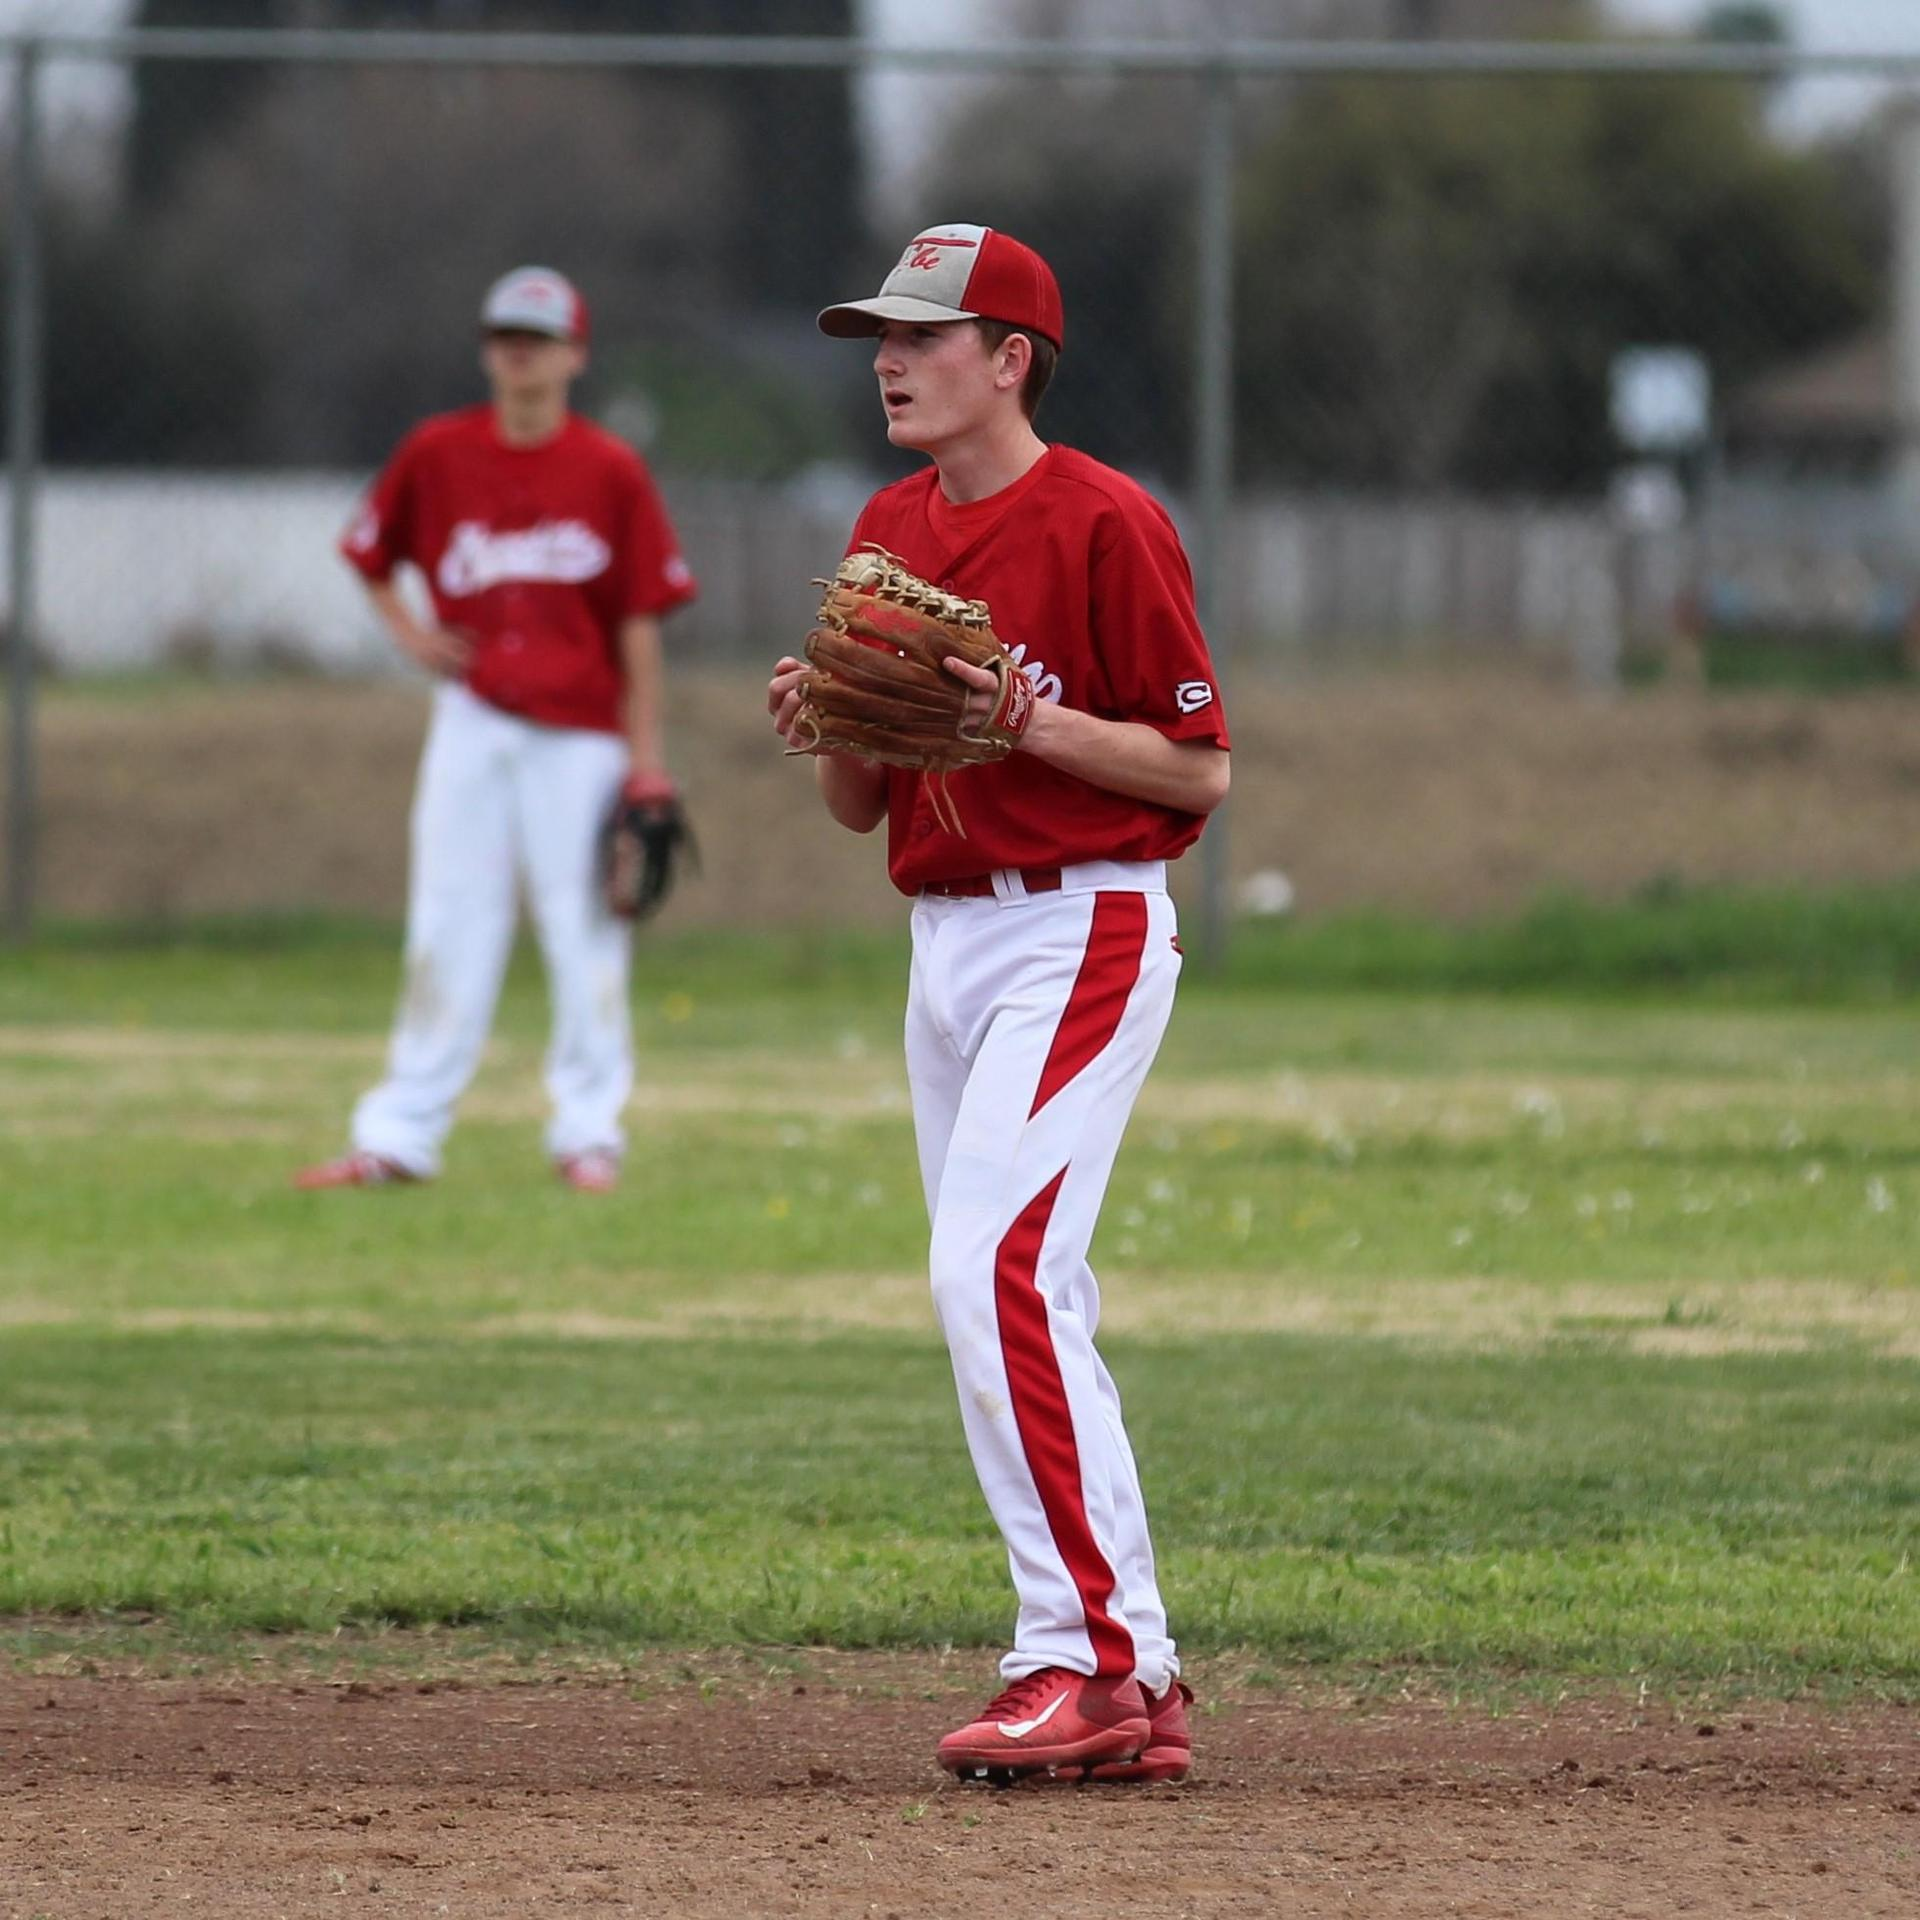 JV boys playing baseball against Madera South